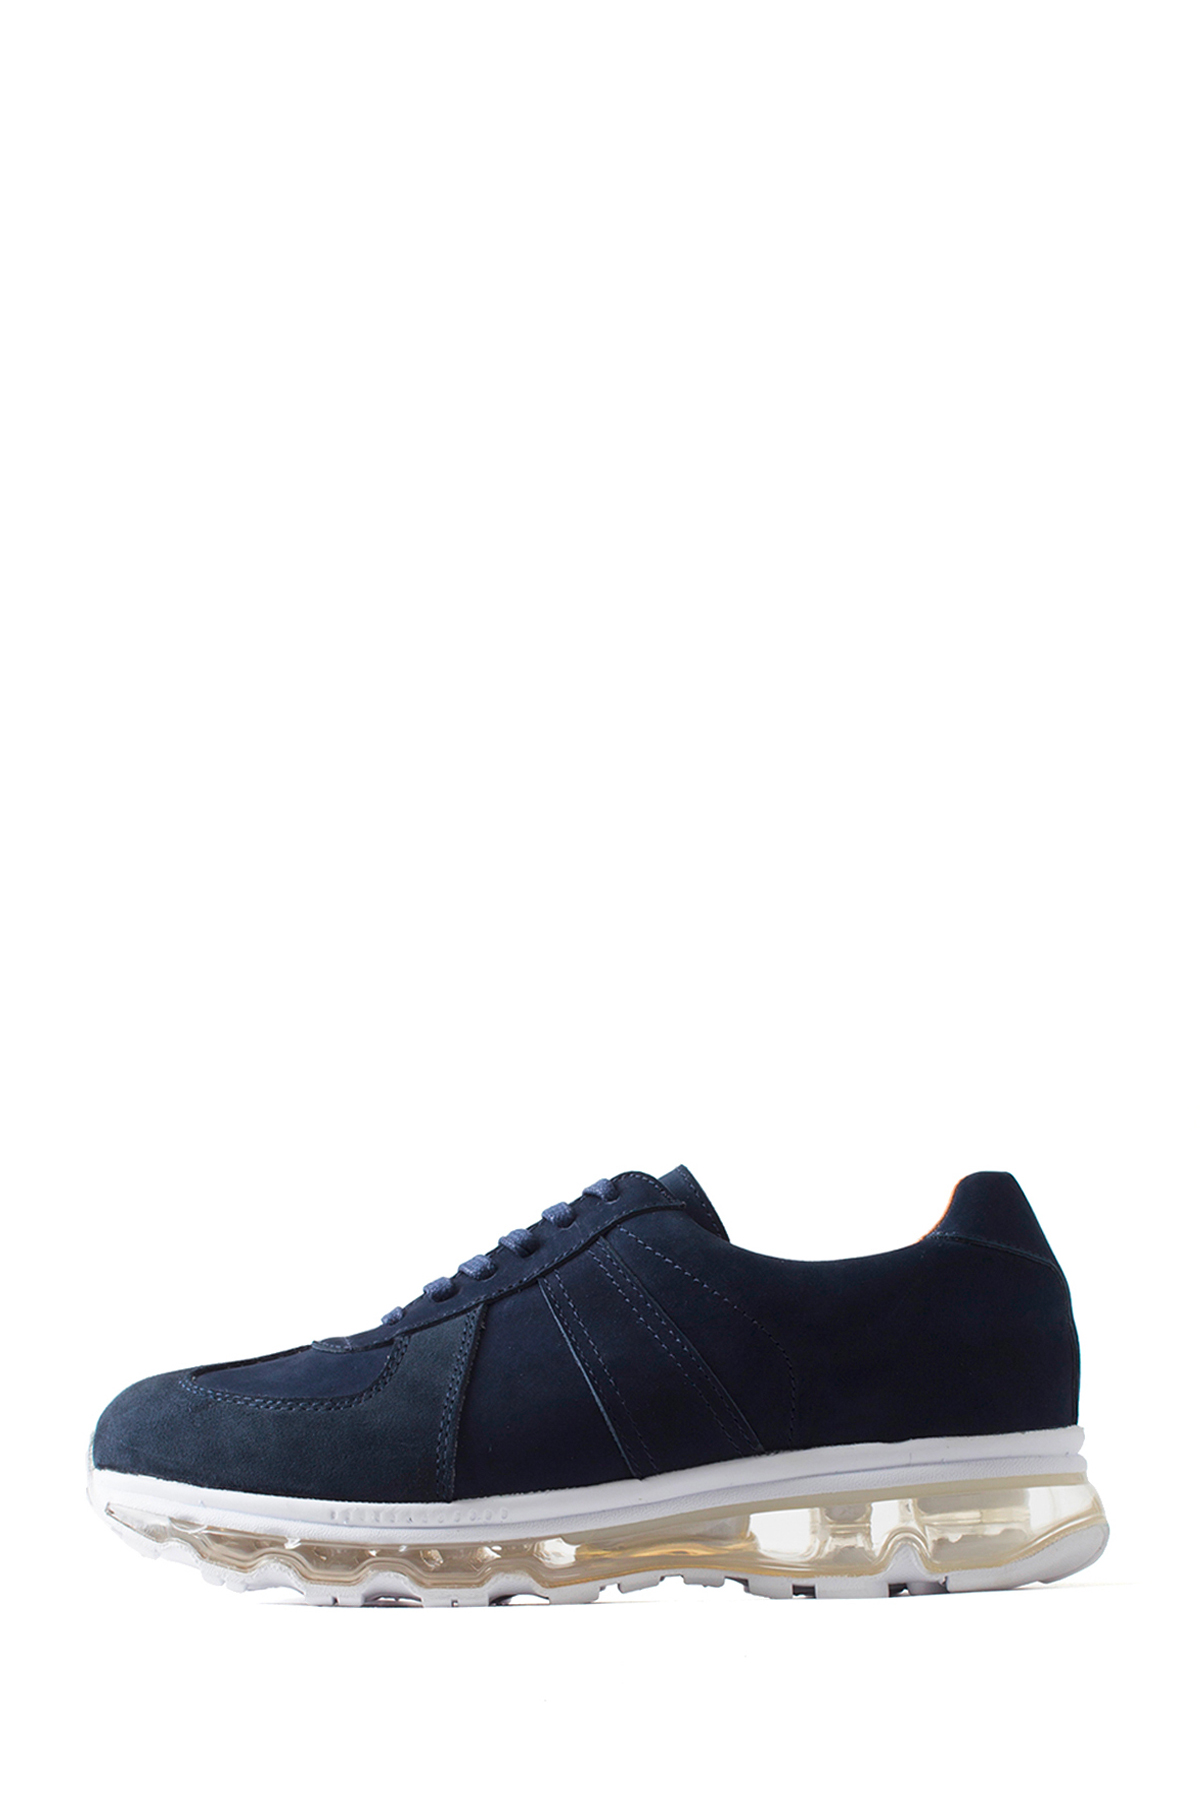 Tomo & Co. : German Trainer (Navy Nubuck / White Sole)